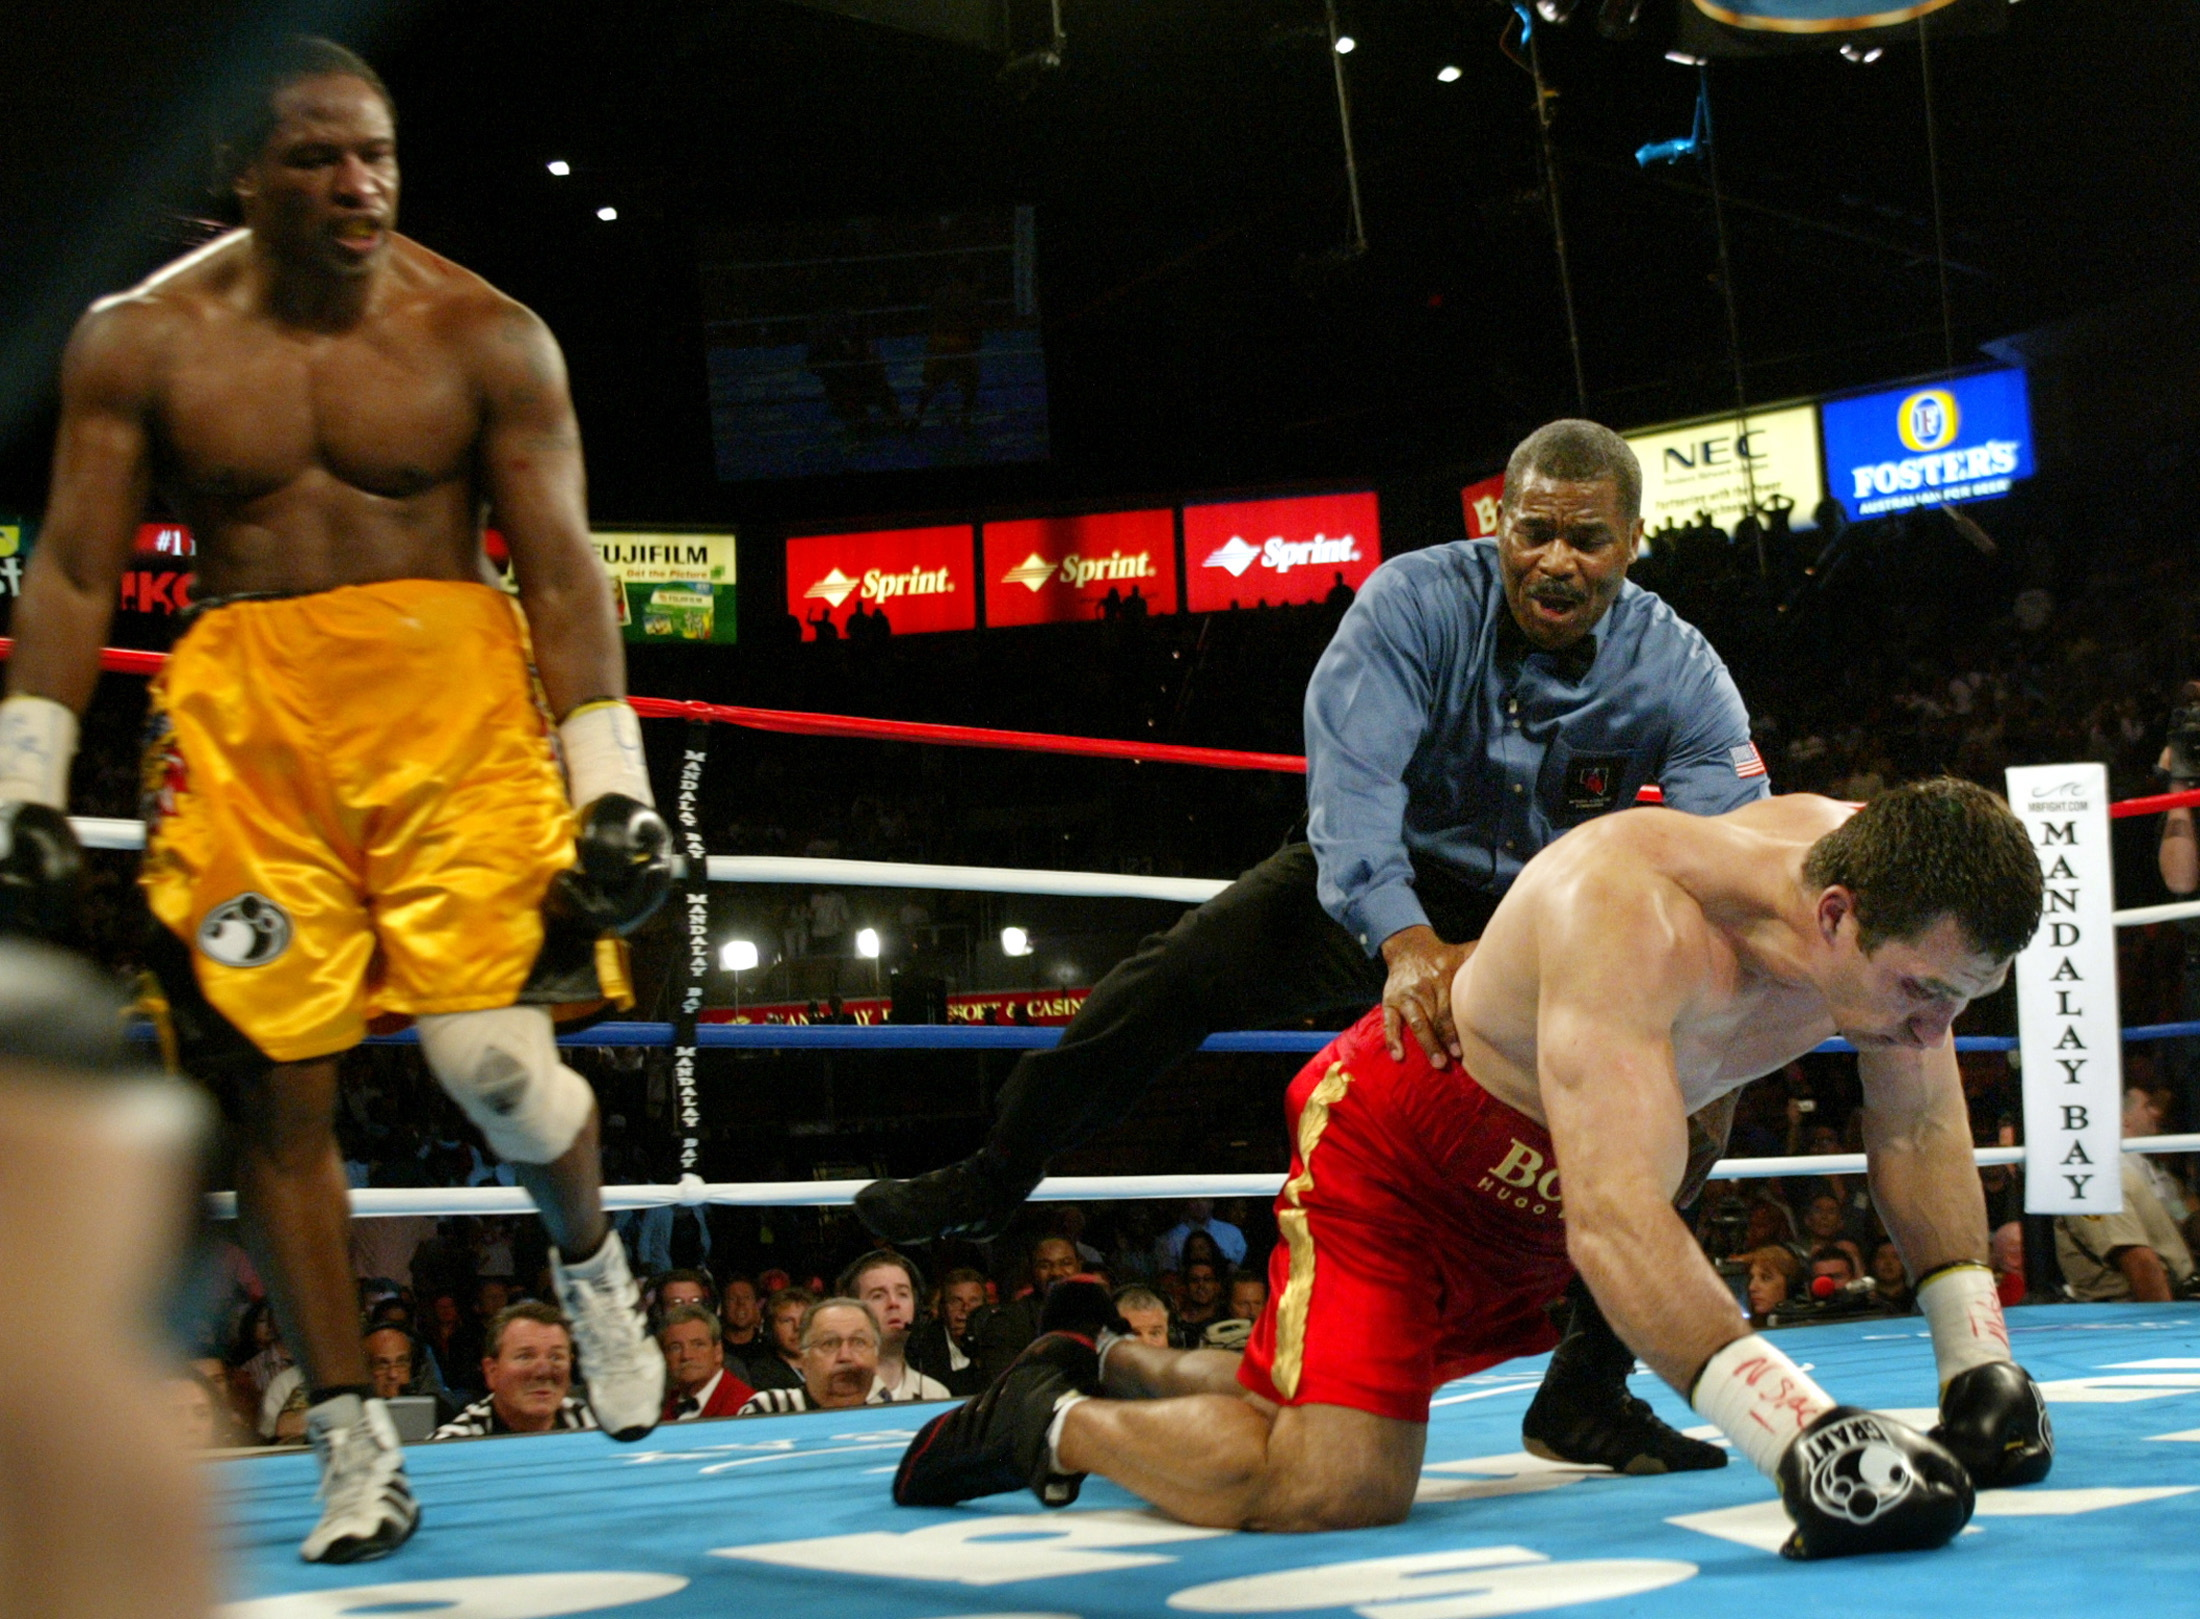 Wladimir Klitschko (r) is counted against Lamon Brewster in the 5th round of their WBO heavyweight title fight in 2004. Few could have predicted that the Ukrainian would go on to win 22 consecutive fights, including the rematch with Brewster. His ability to pick himself after failure is an example to all aspiring athletes. Image supplied by Action Images / Steve Marcus.